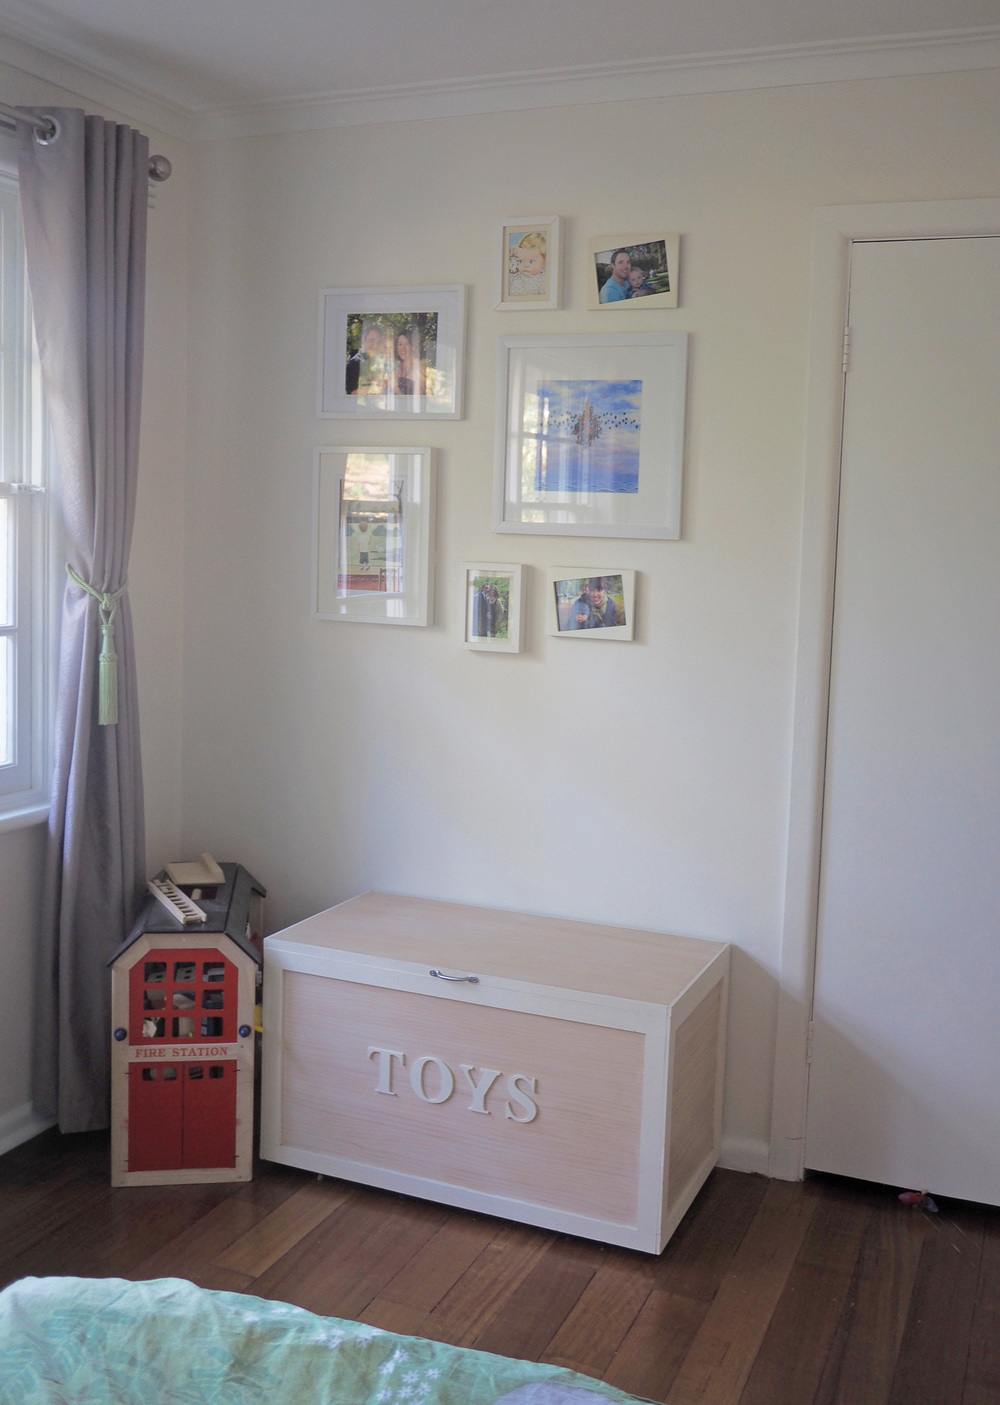 Special photos and artwork for our son's bedroom makeover - The Organised You